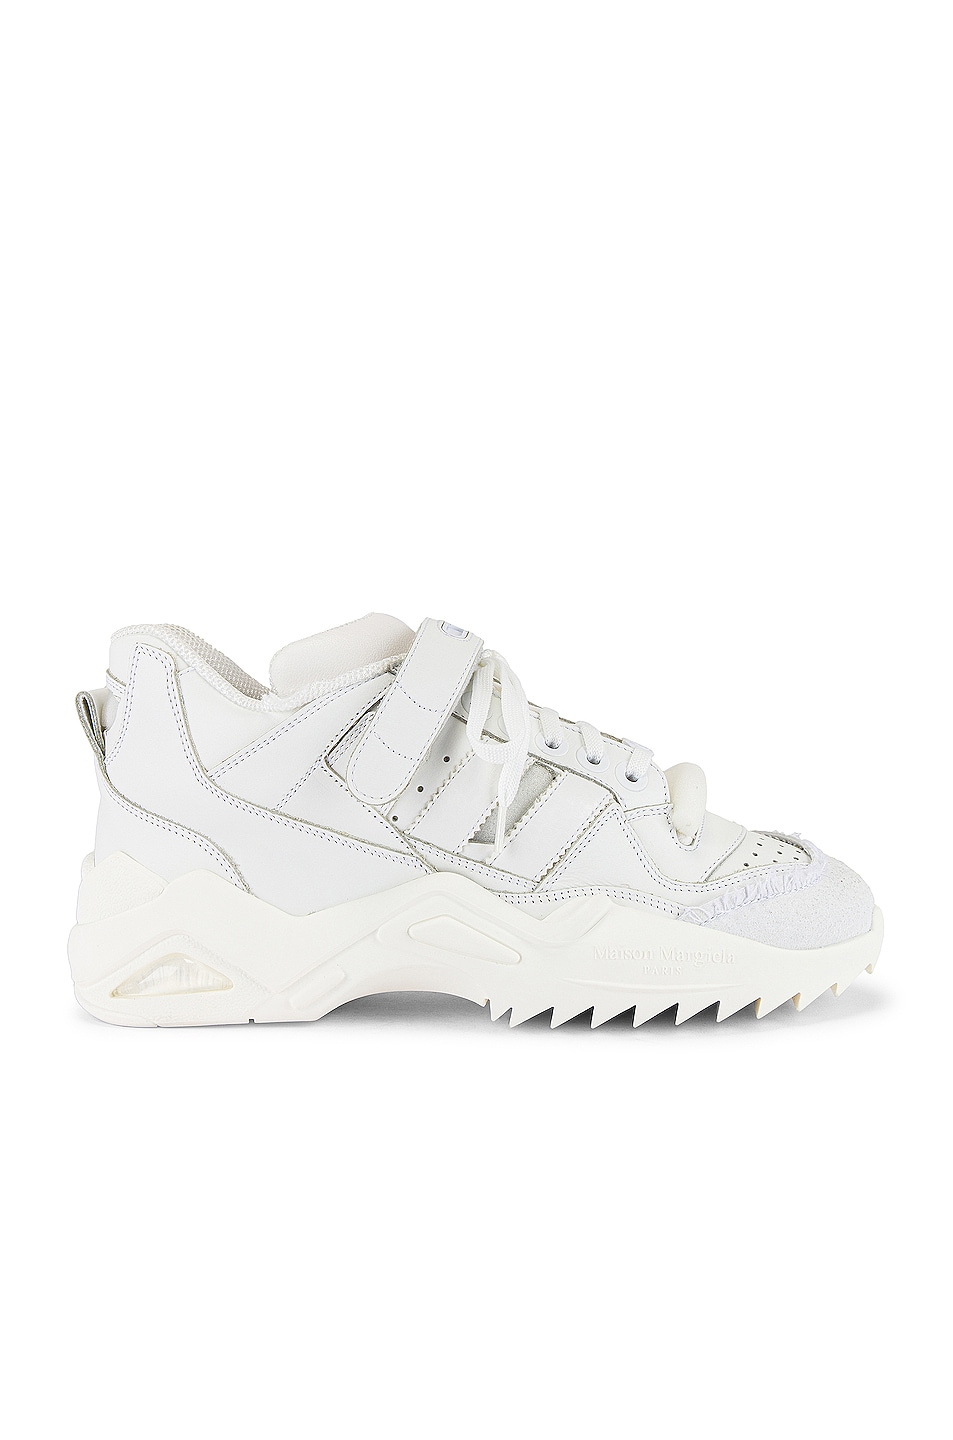 Image 2 of Maison Margiela Retro Fit Midi Sneaker in White